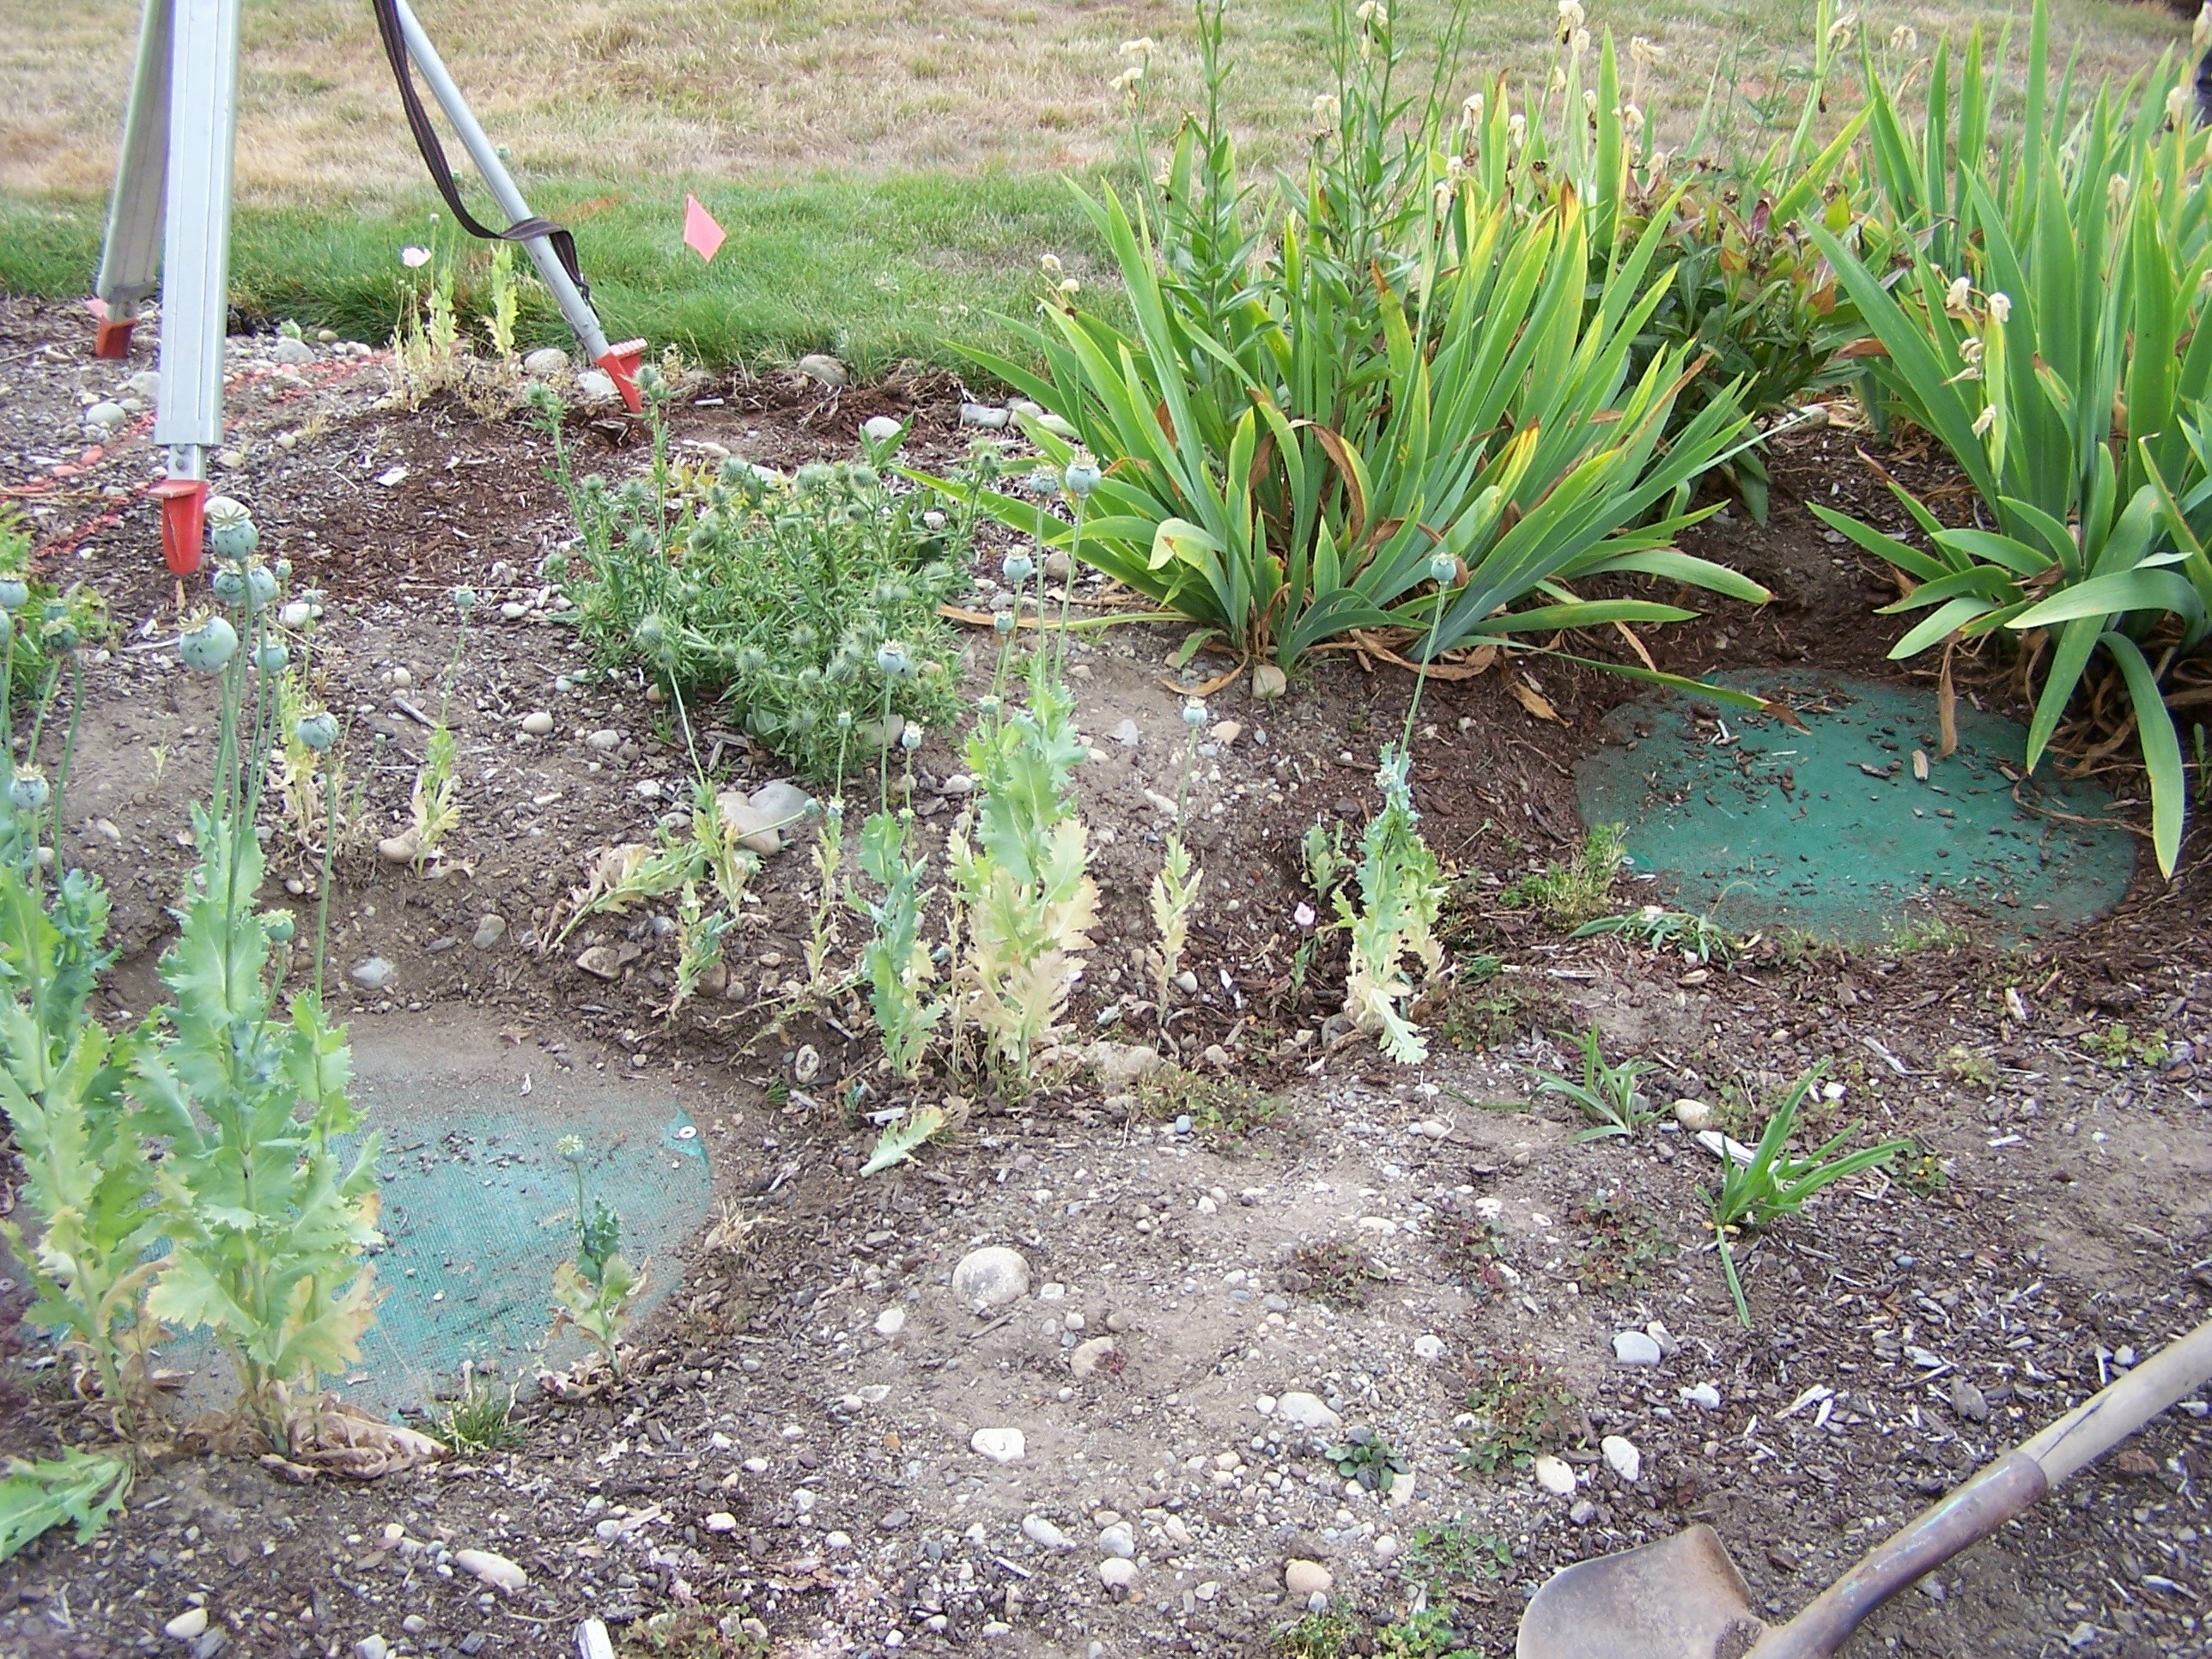 Landscaping Over A Septic Tank : On how your septic system works and to find tank lids